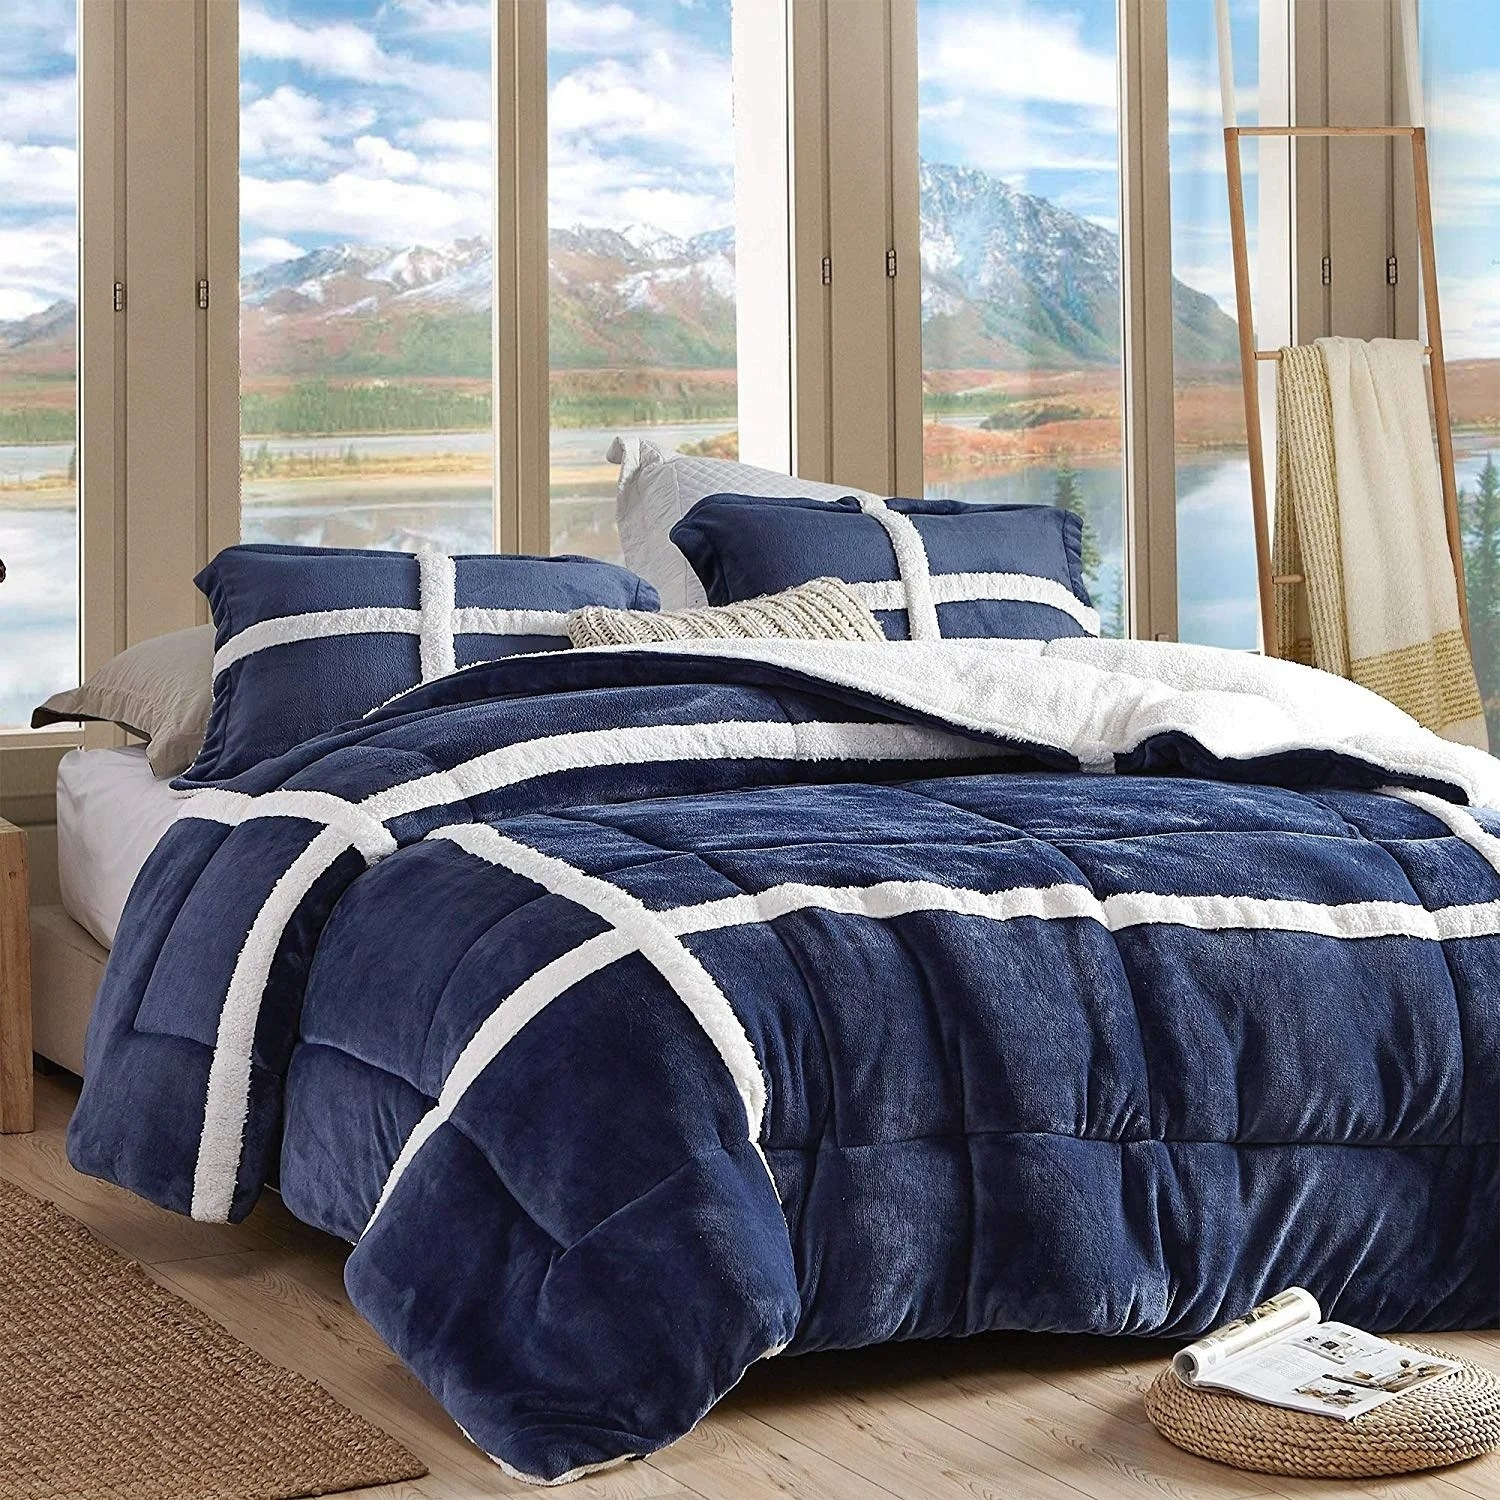 coma inducer oversized comforter wilderness navy